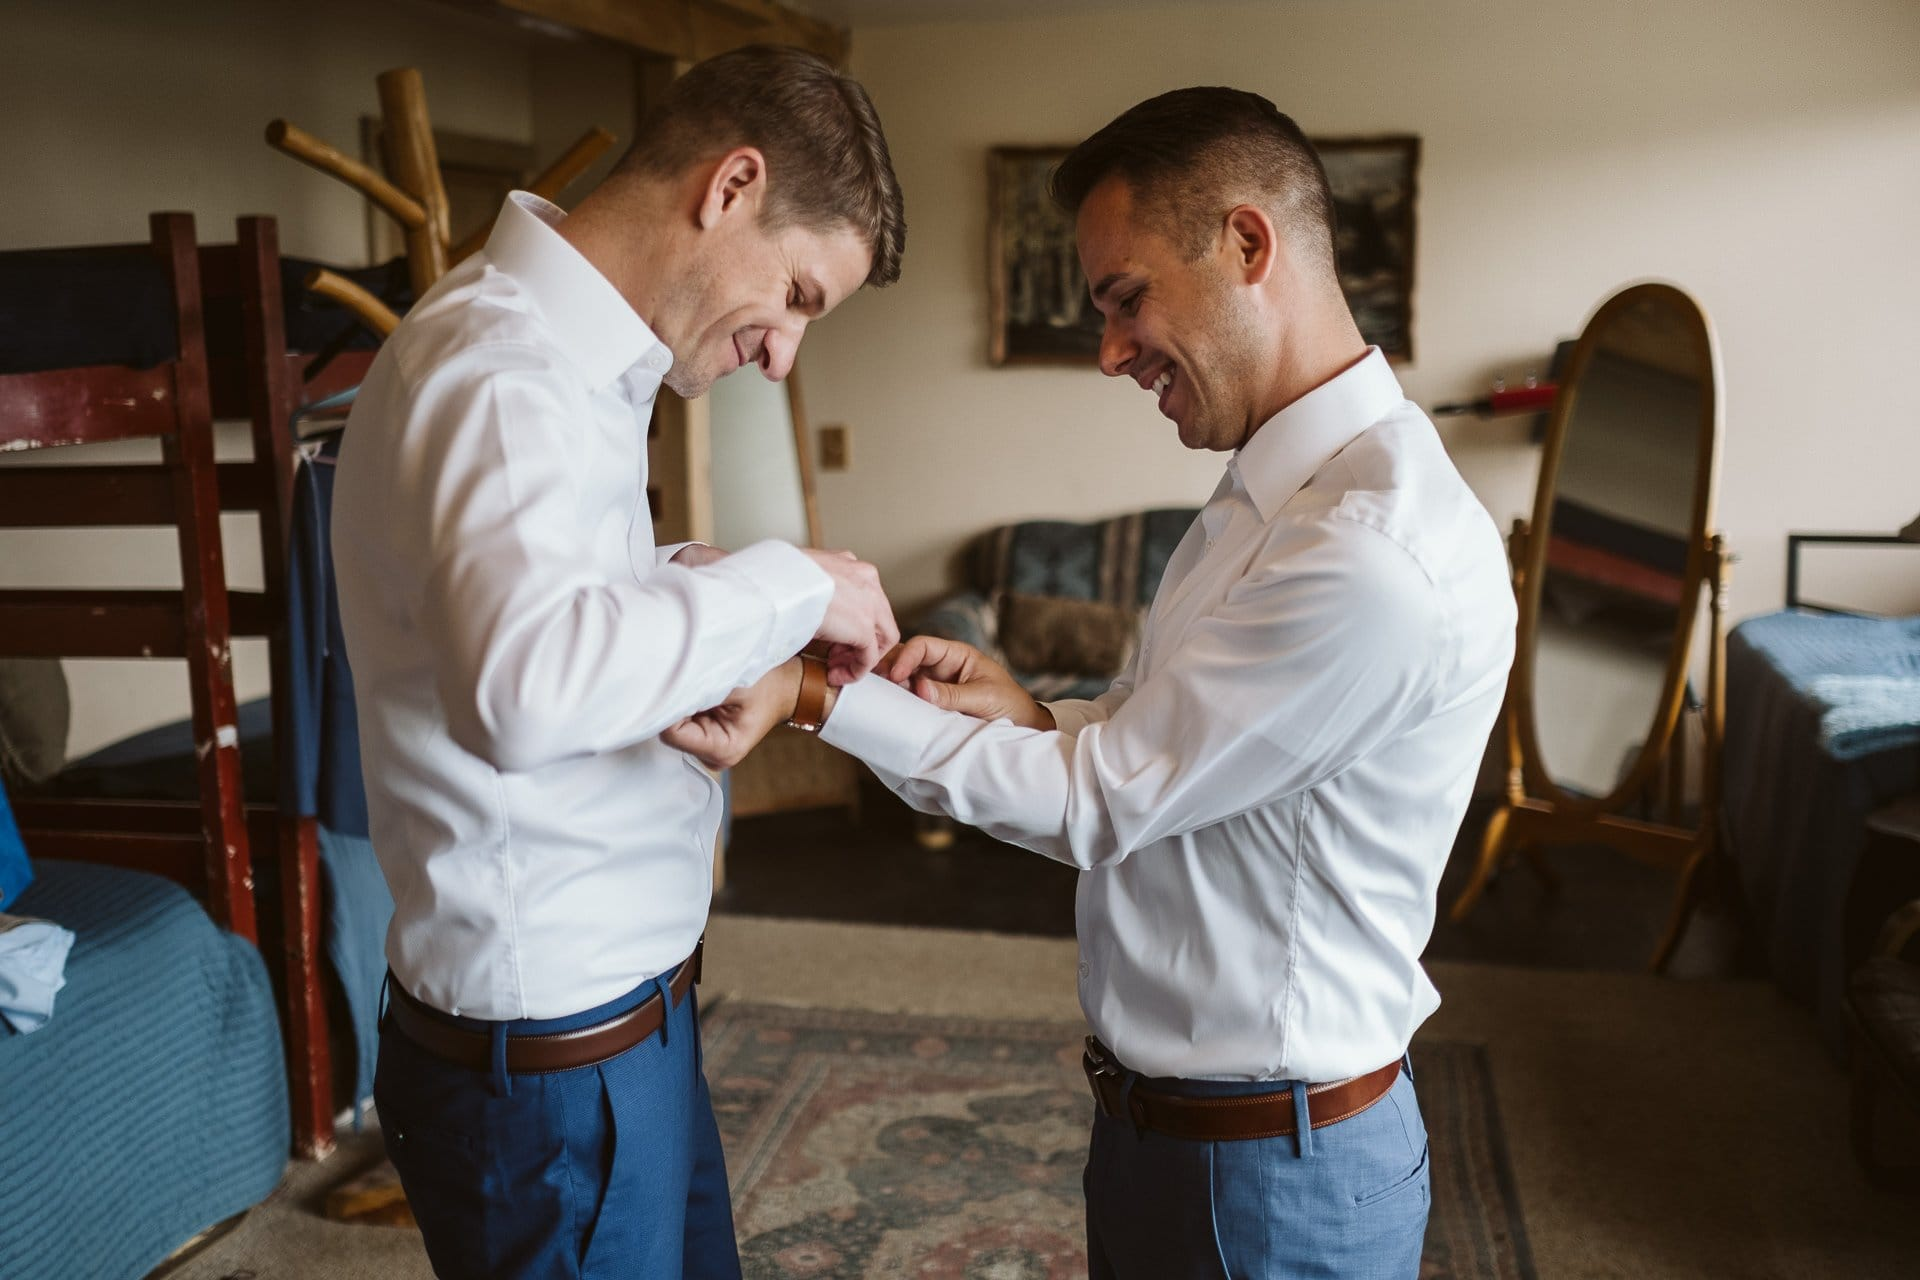 Grooms getting ready together for wedding at Colorado Mountain Ranch